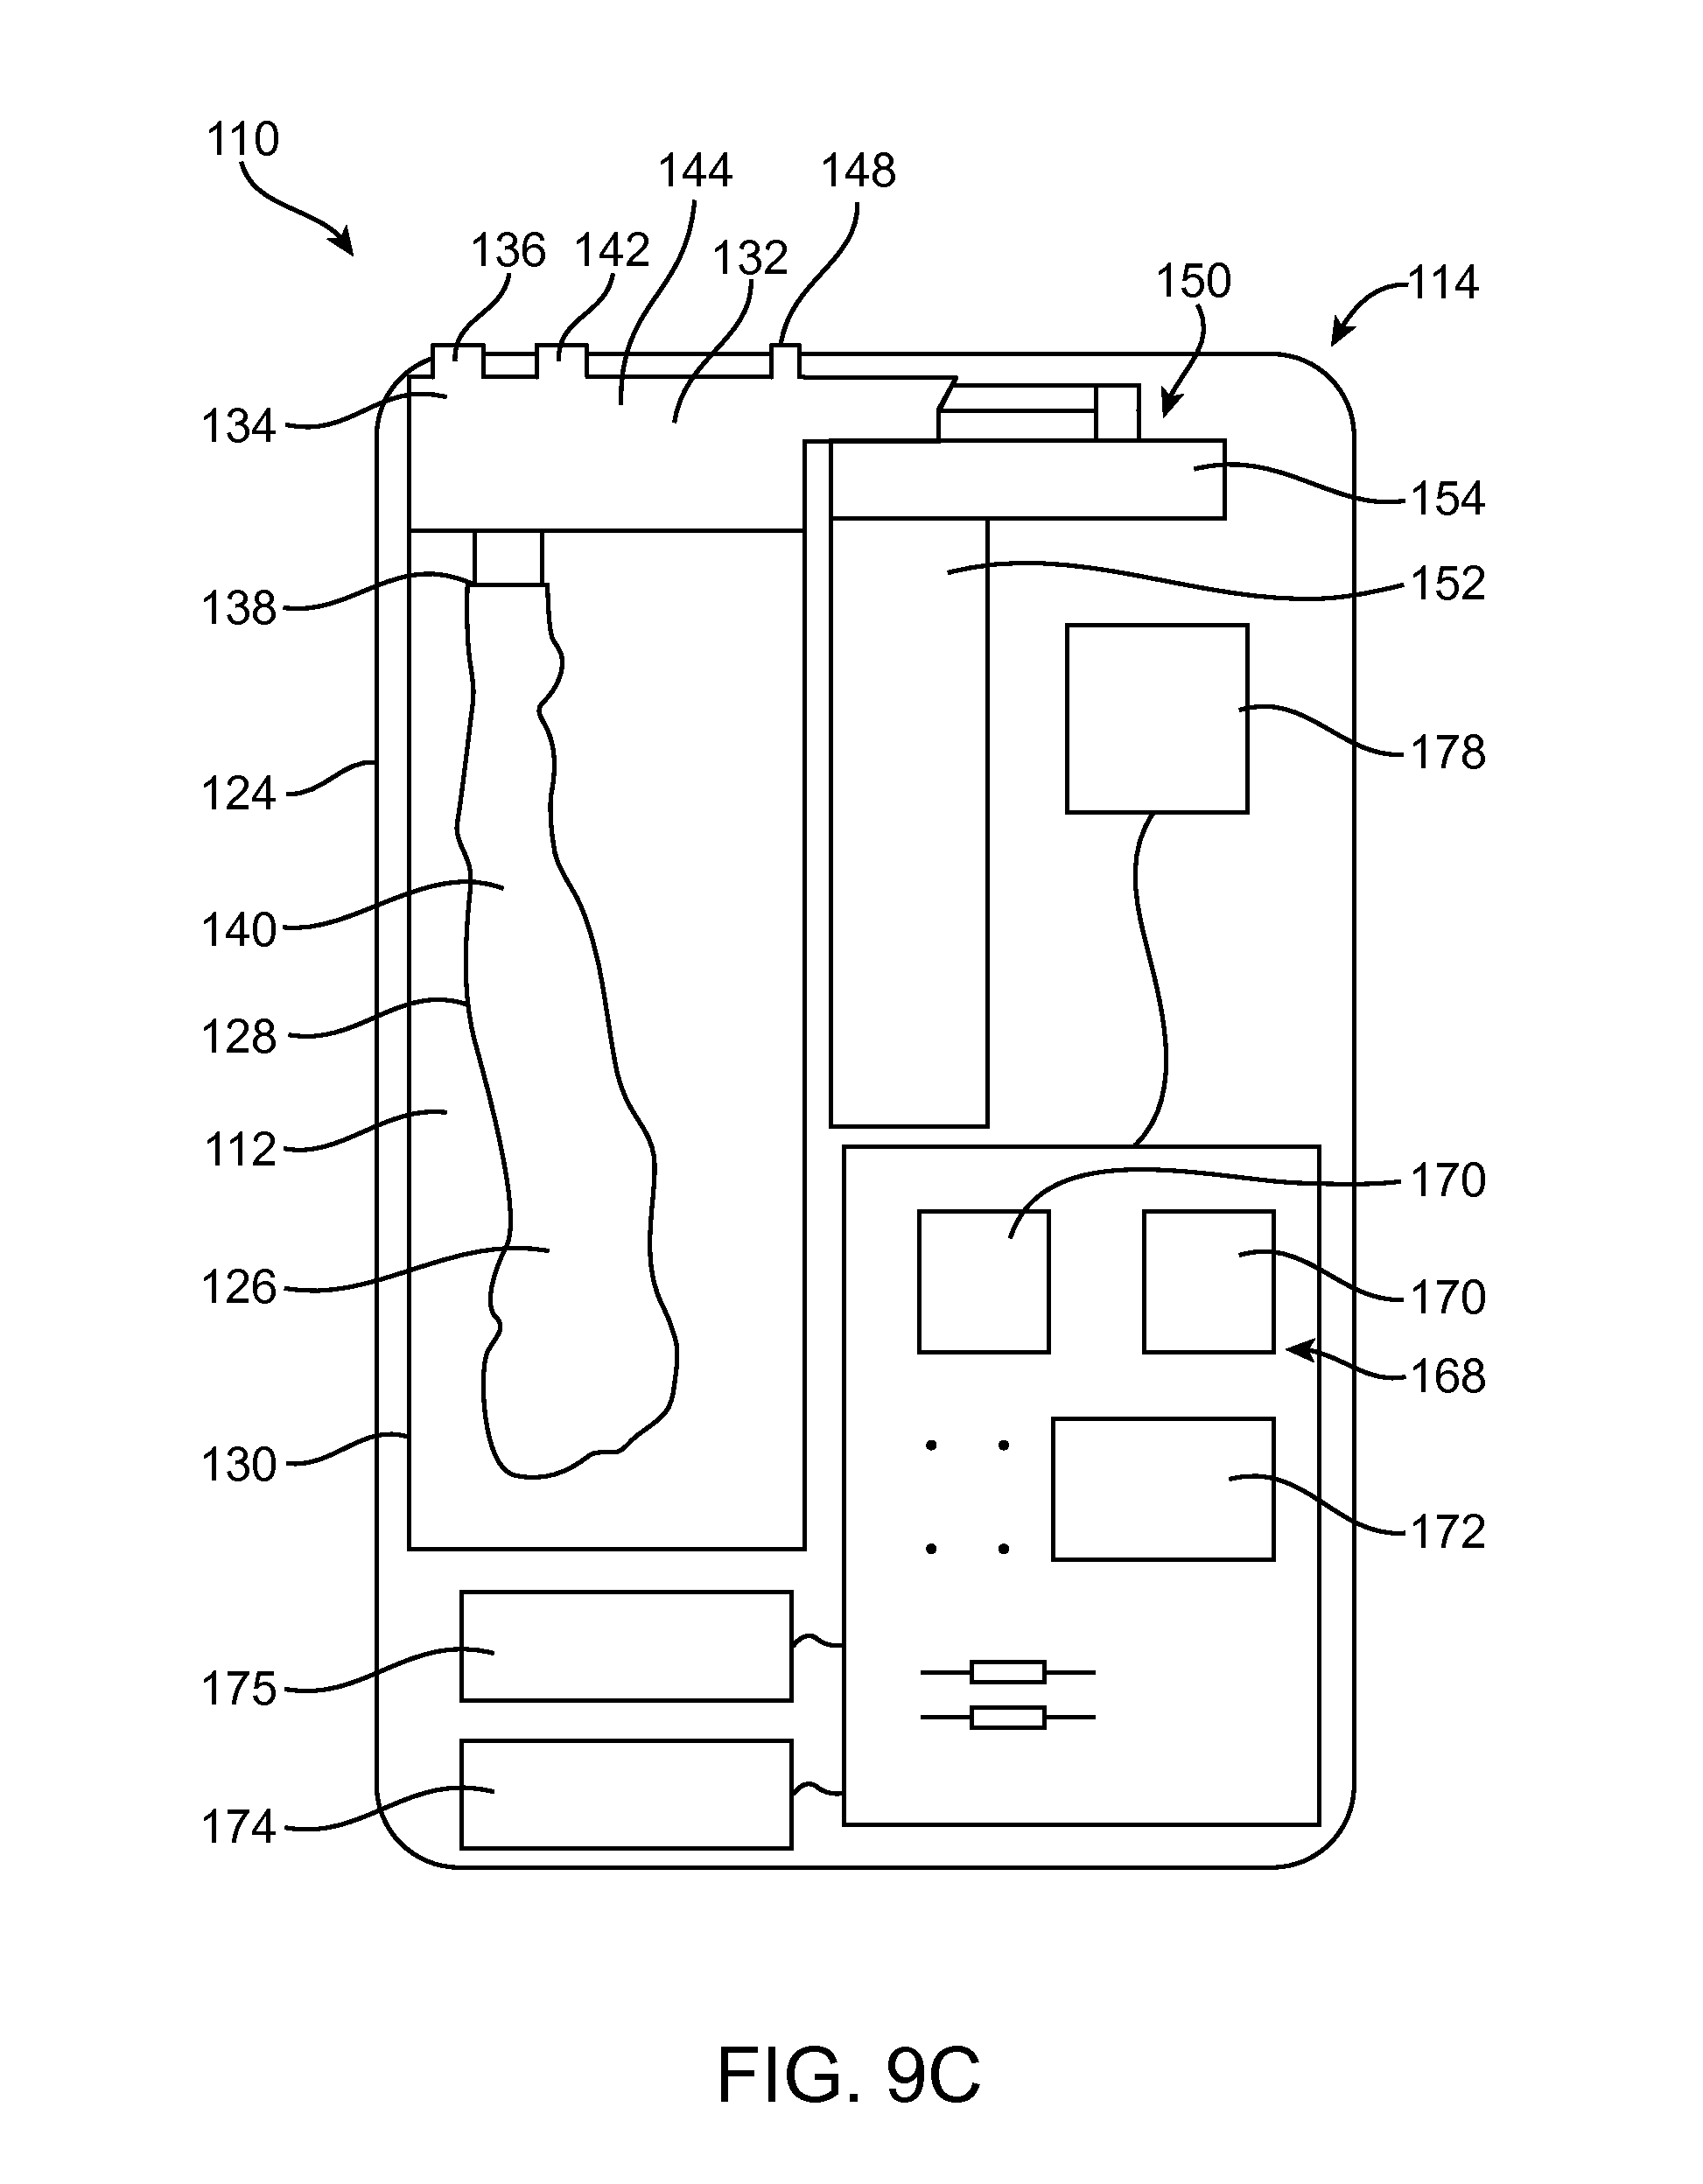 Us9211377b2 infusion pump system with disposable cartridge having pressure venting and pressure feedback patents